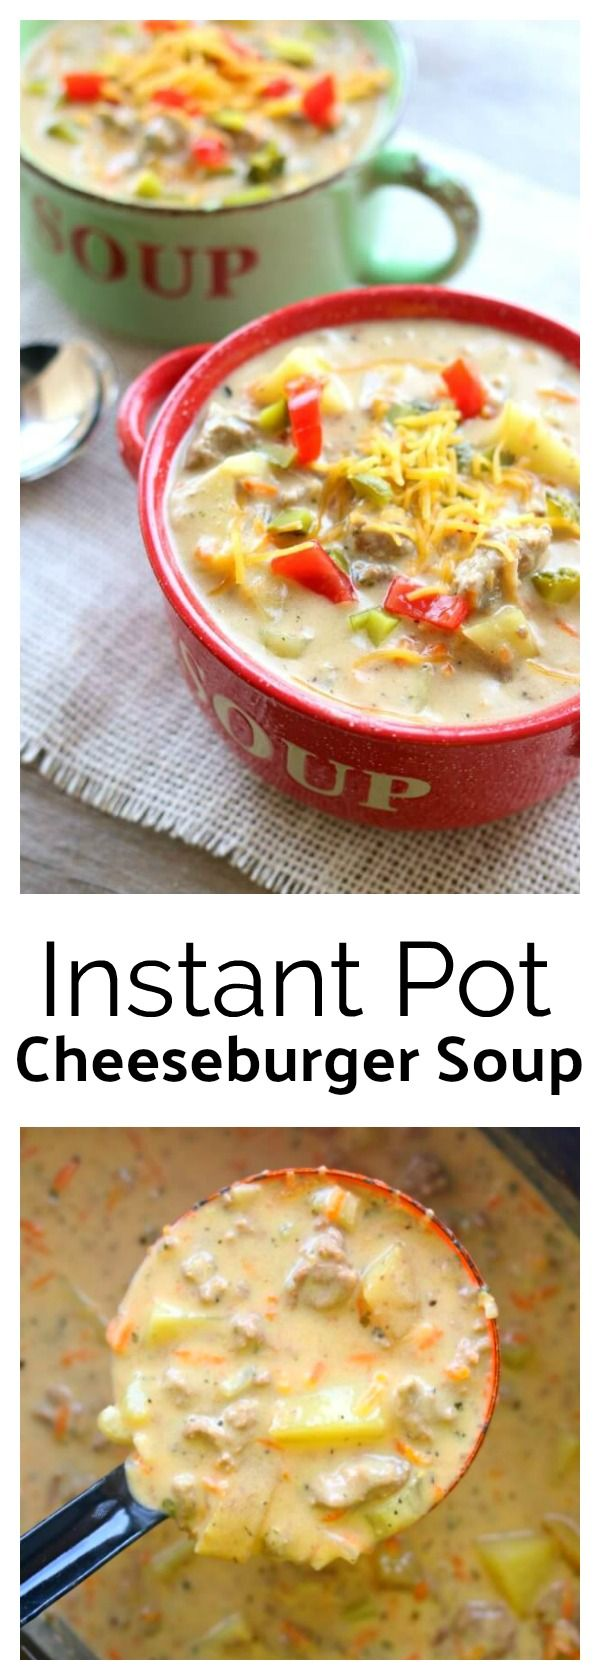 Instant Pot Cheeseburger Soup--creamy and cheesy soup that is made so fast in your electric pressure cooker. Serve it with diced up dill pickle and tomatoes to get that authentic cheeseburger taste. Add crumbled bacon for bacon cheeseburger soup! Miss the (Paleo Chicken Bacon)